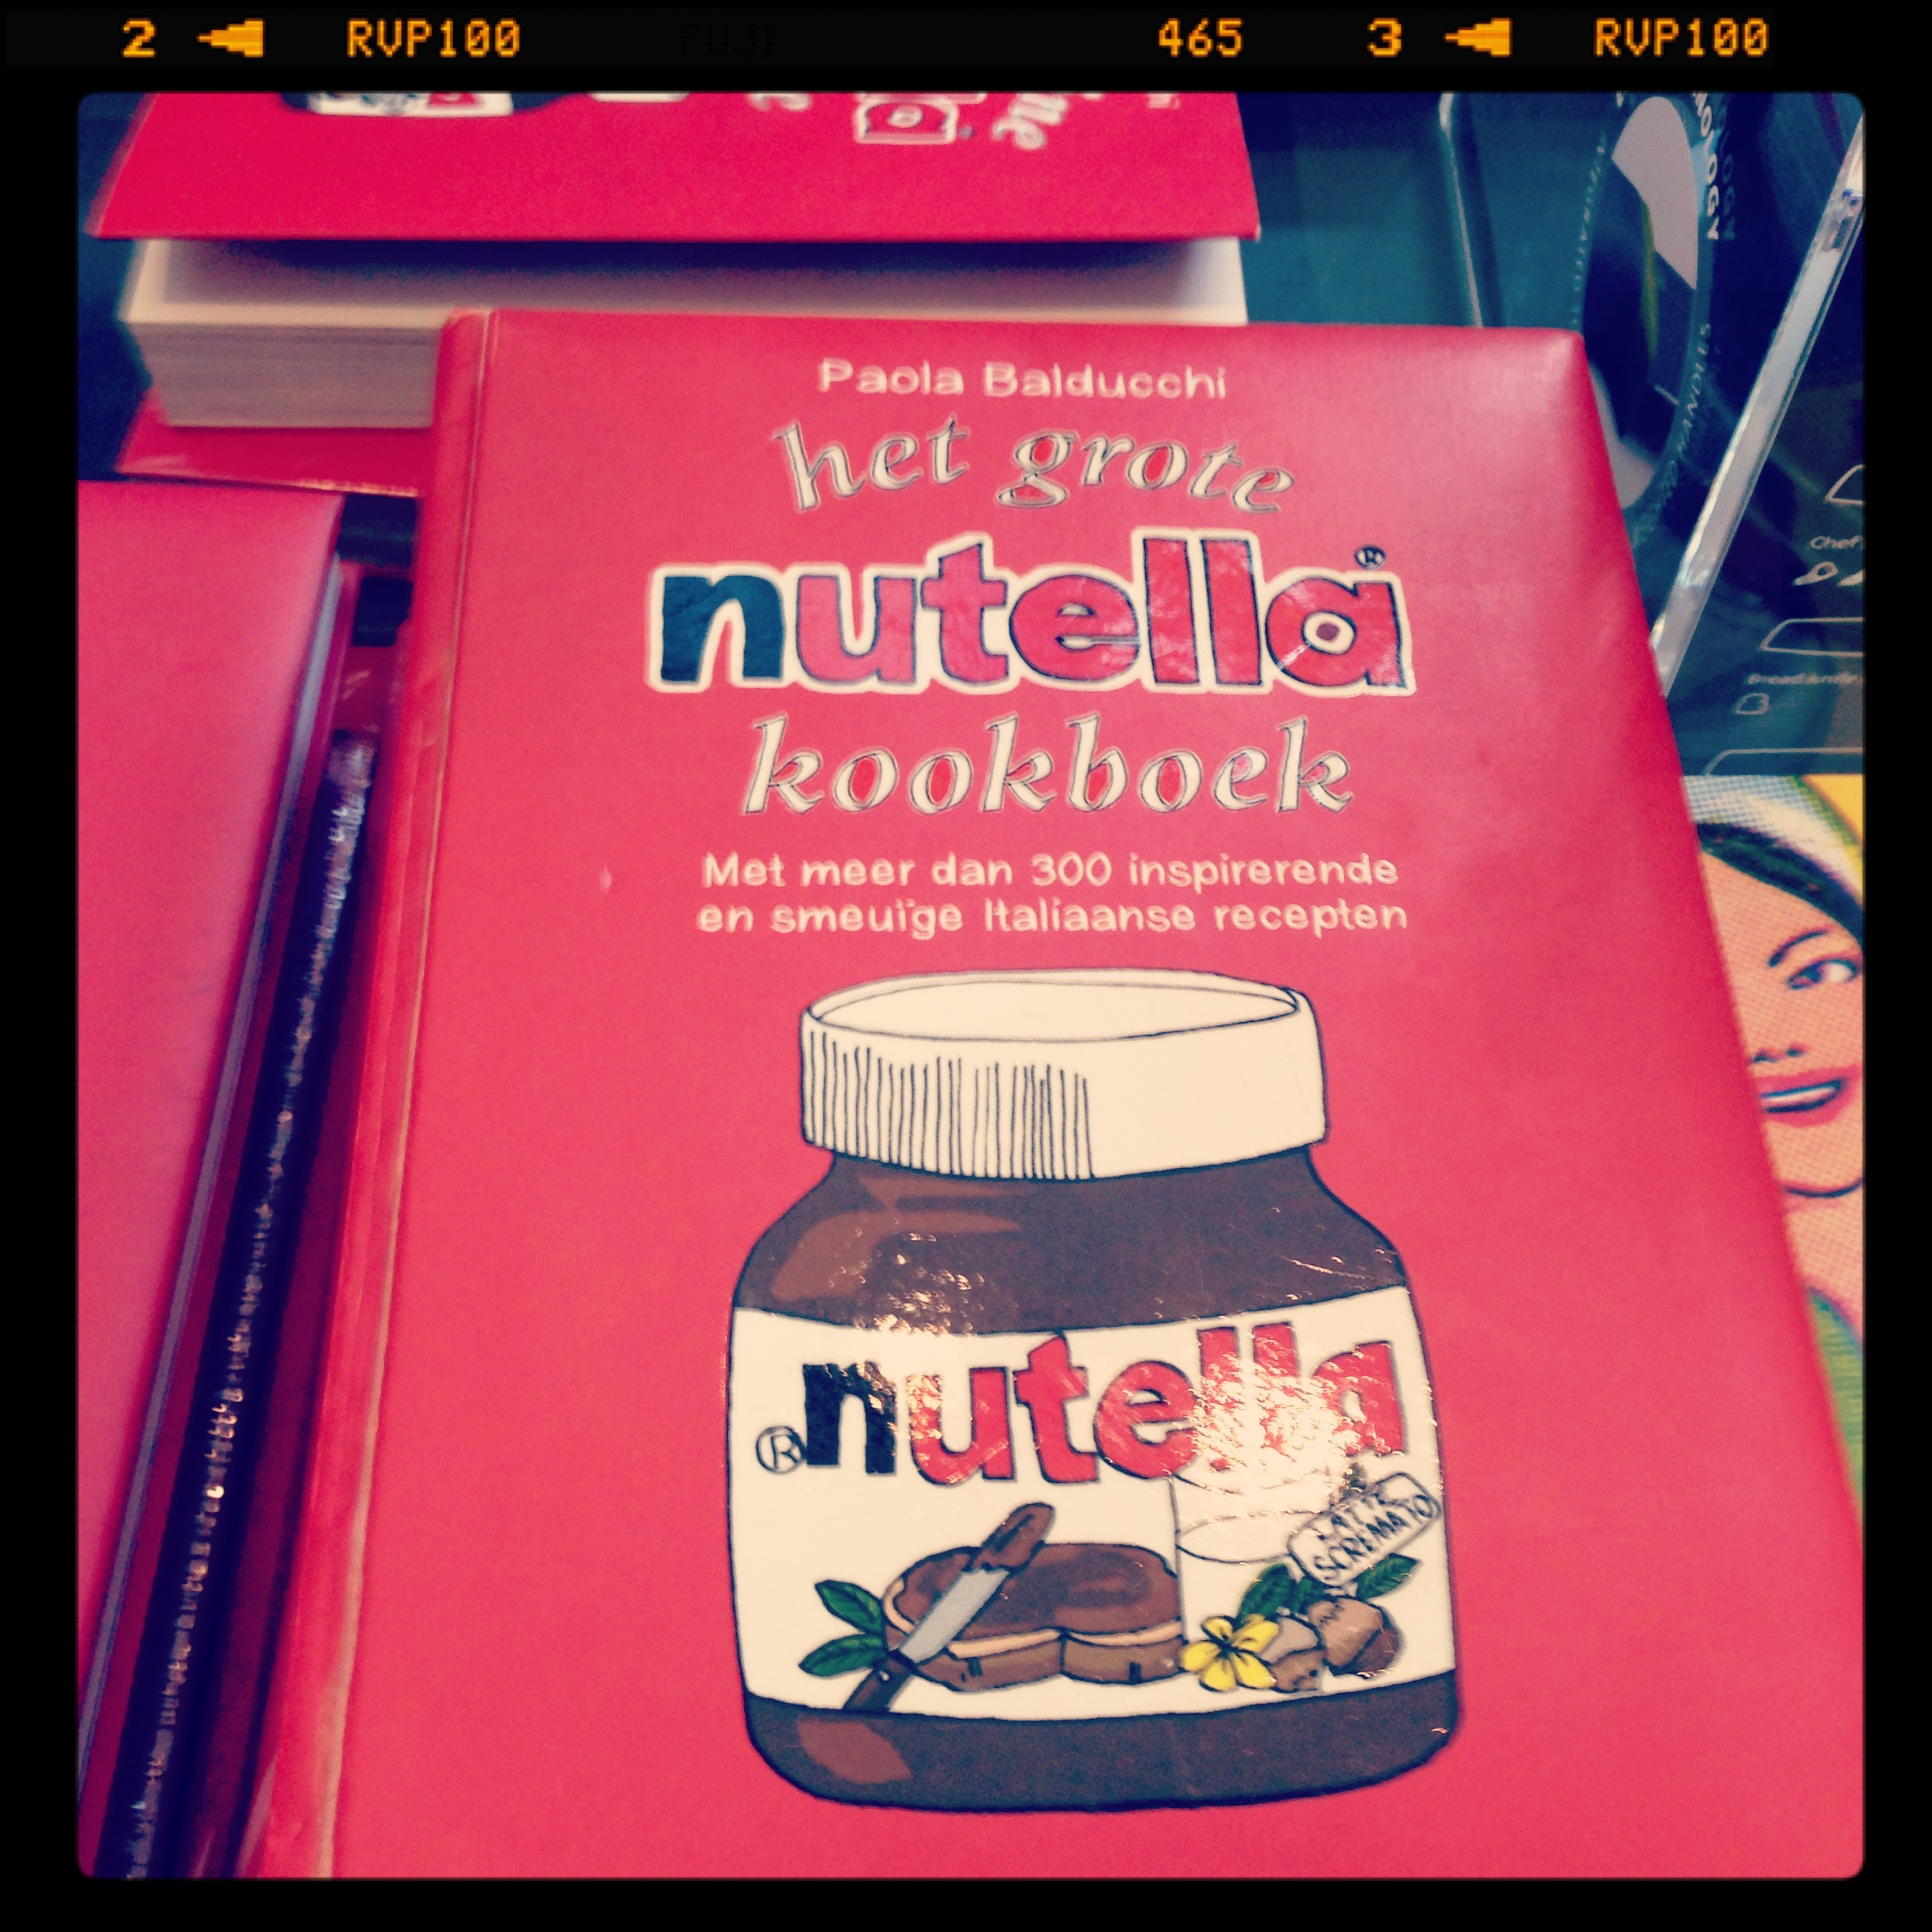 Nutella Recipes and cookery book